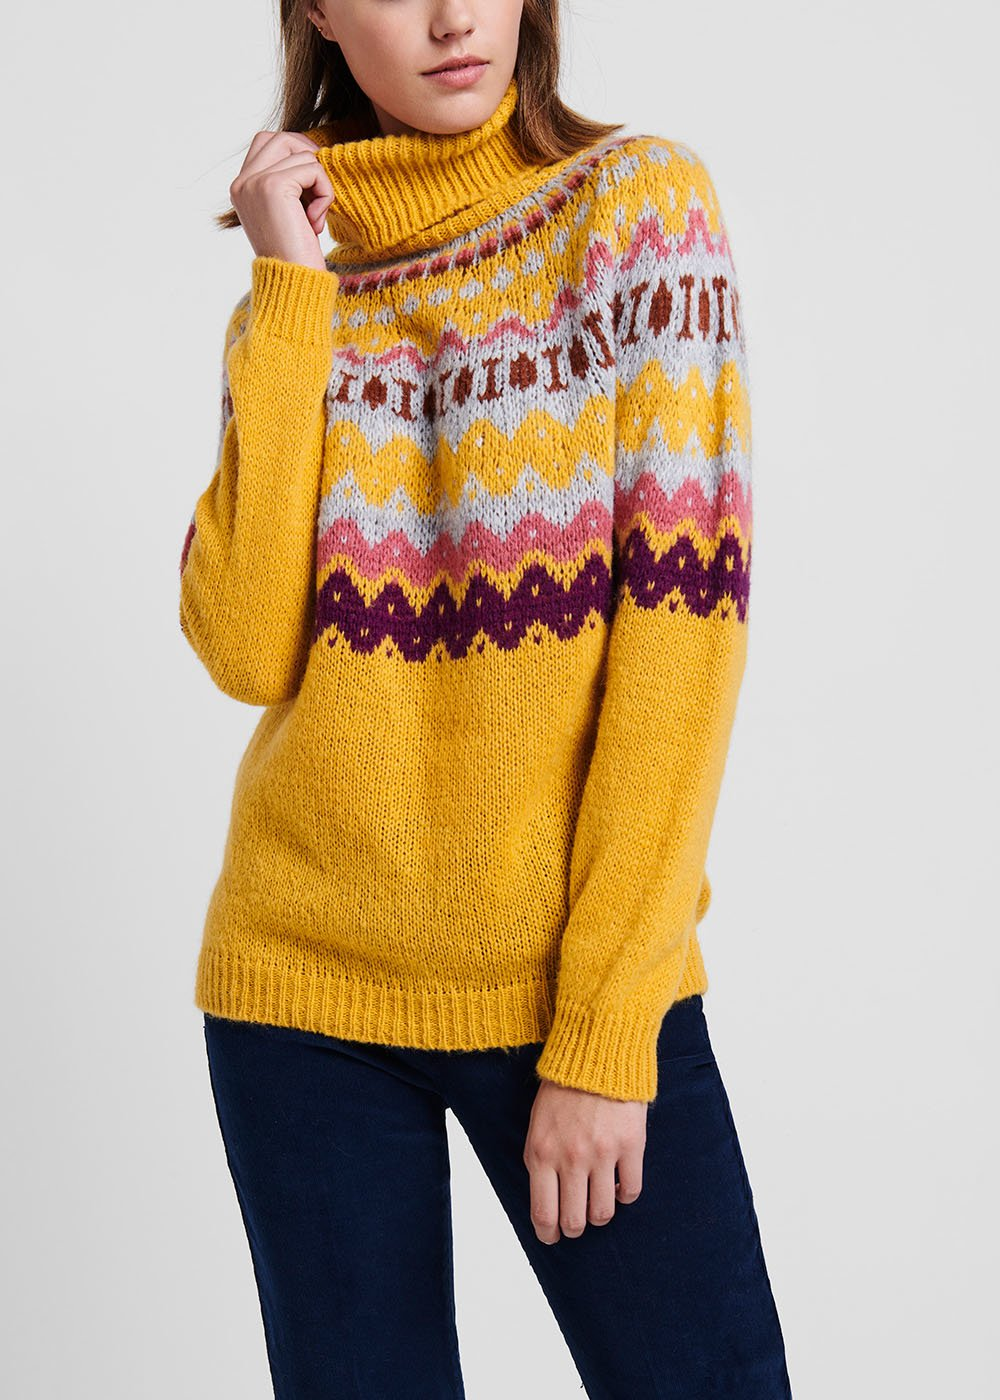 Turtleneck corn coloured sweater with Norwegian pattern